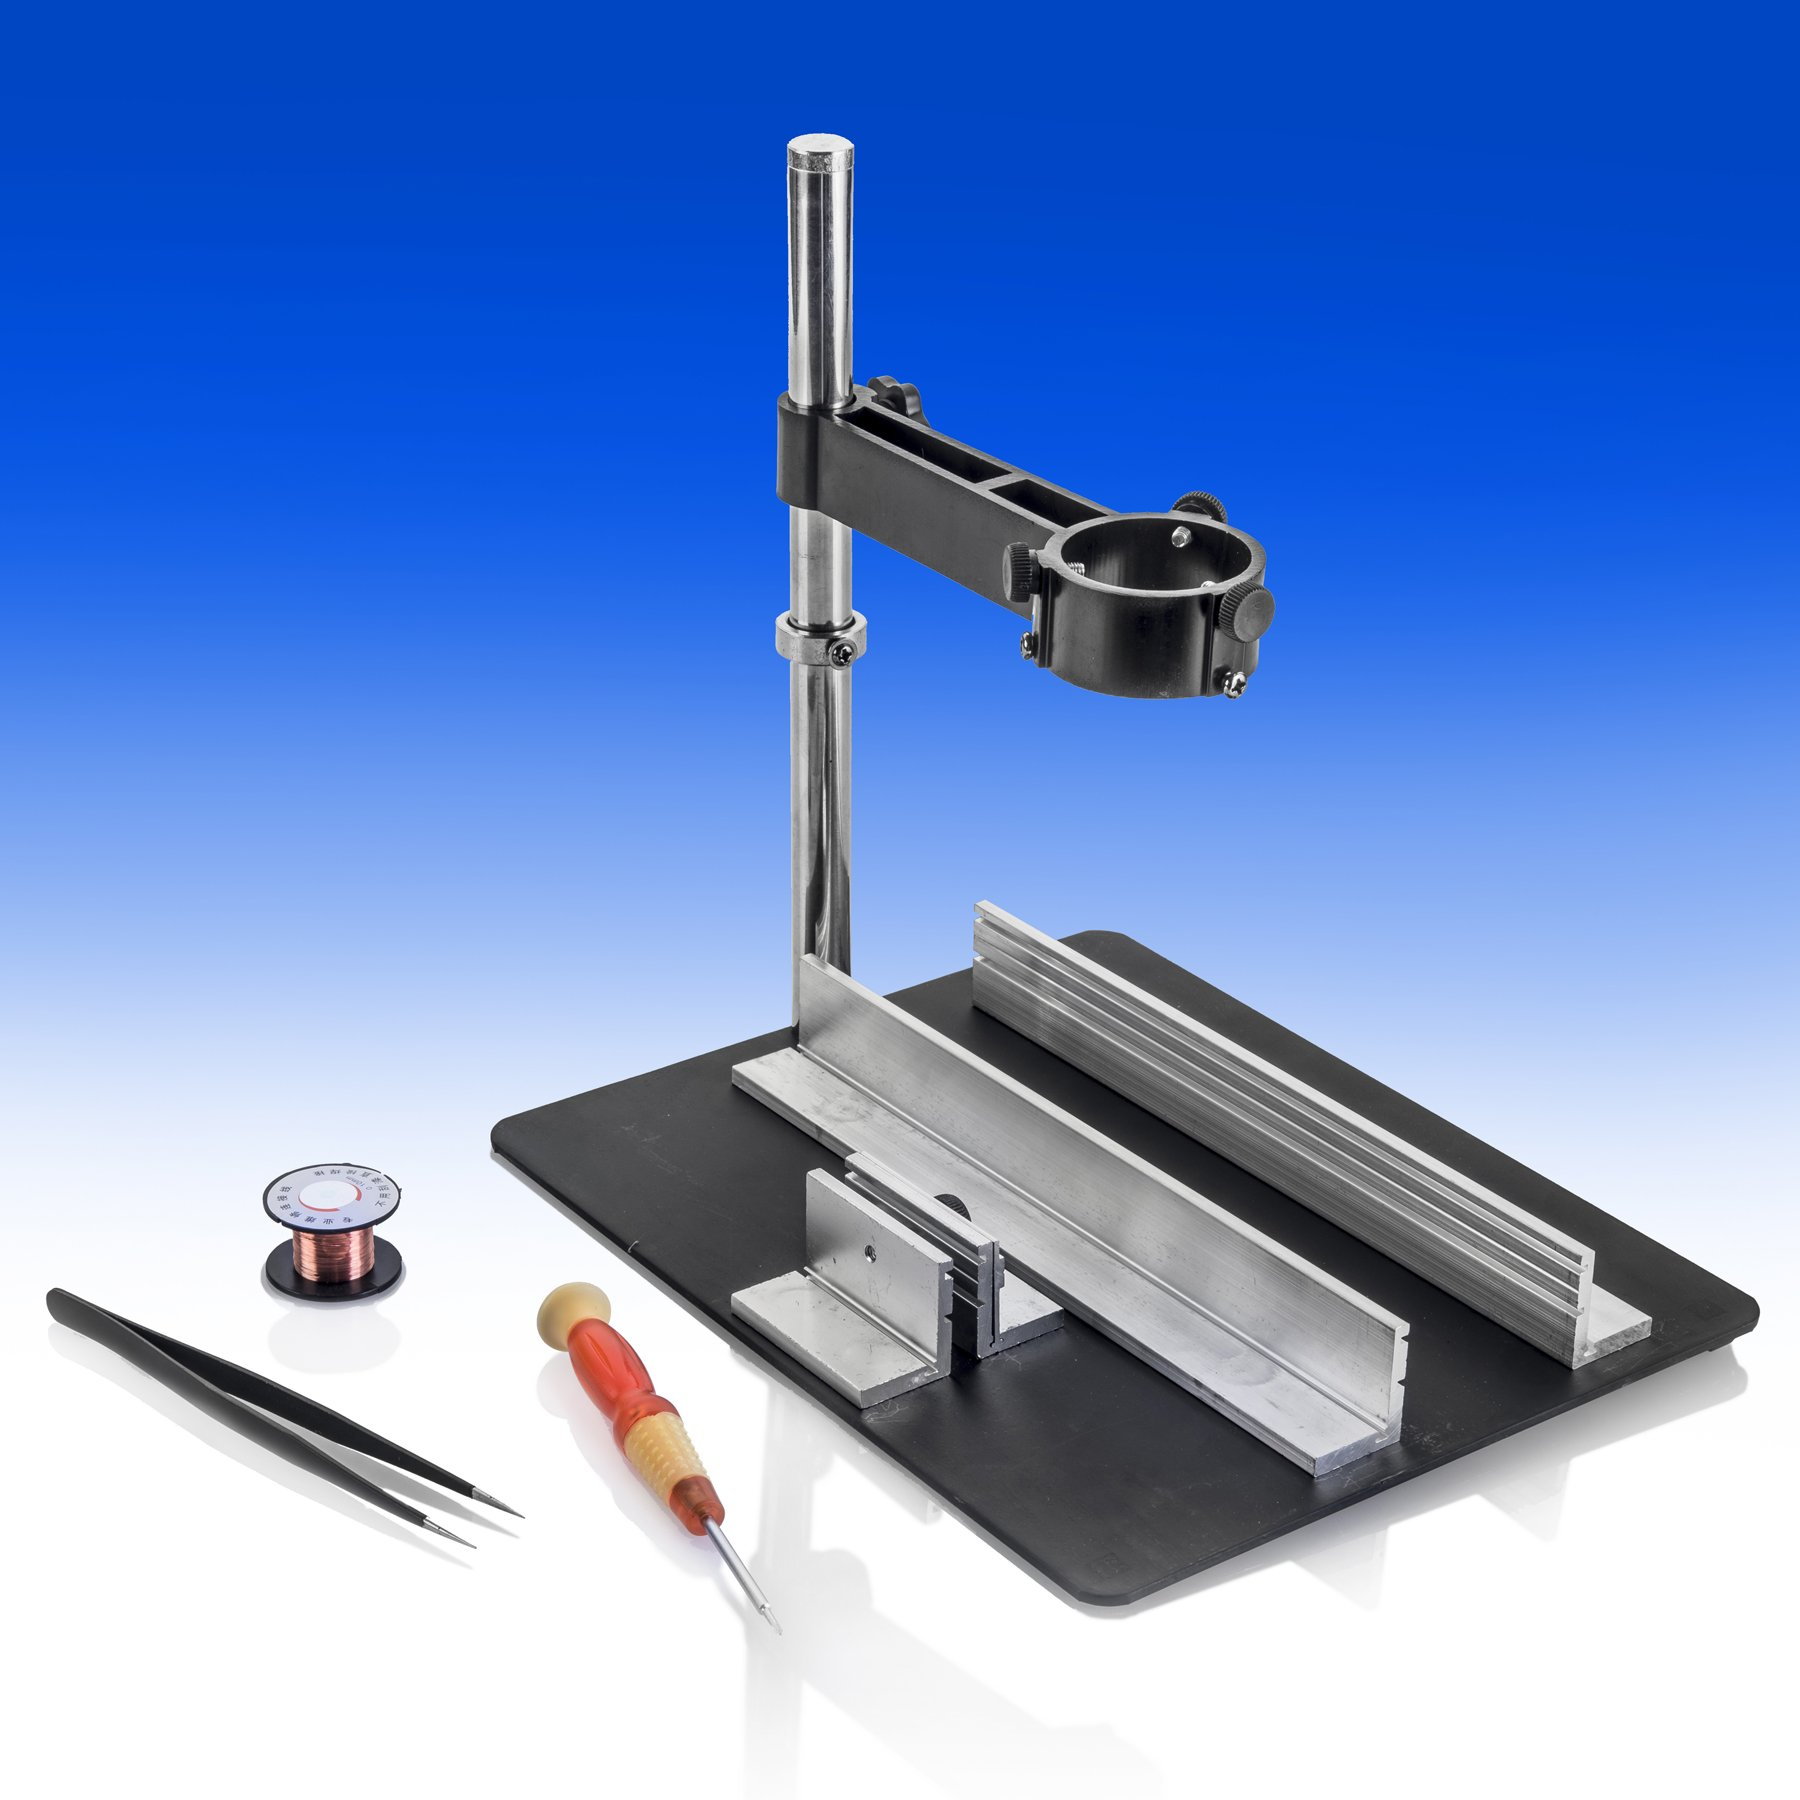 X-TRONIC MODEL XTR-2010-XTS Magnetic Hands Free Soldering Circuit Board Holder w/Hot Air Gun Bracket